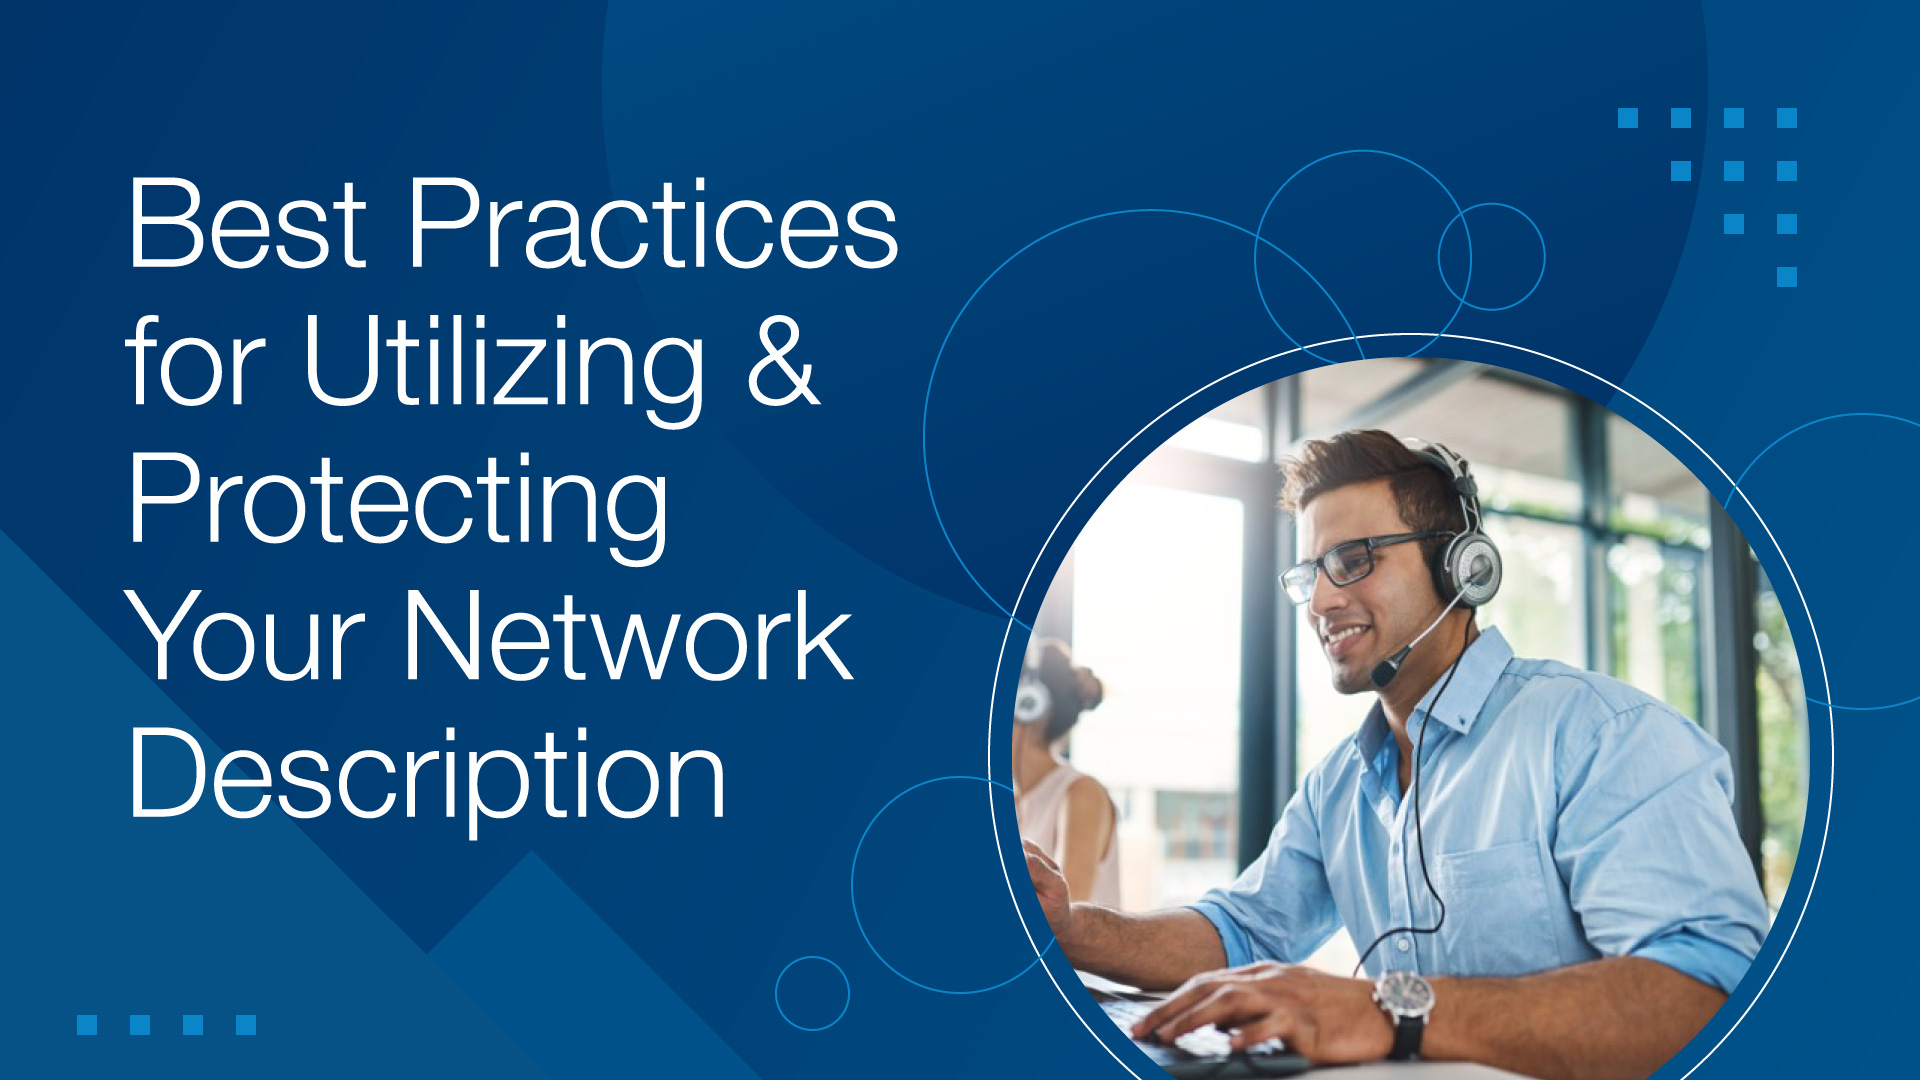 Best Practices for Utilizing and Protecting your Network